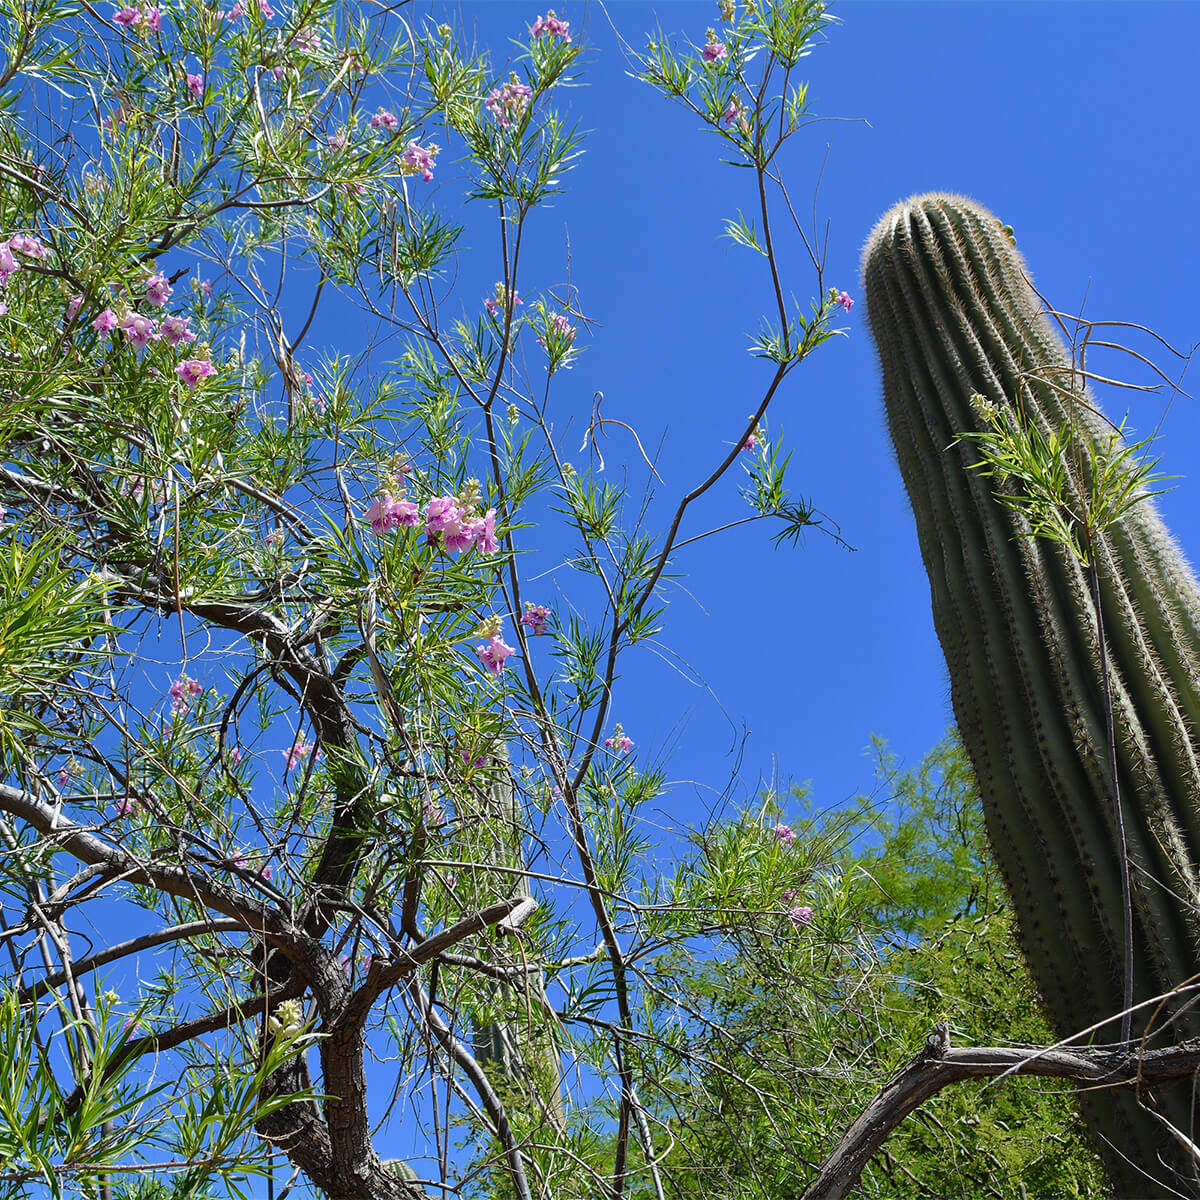 flowering tree and cactus